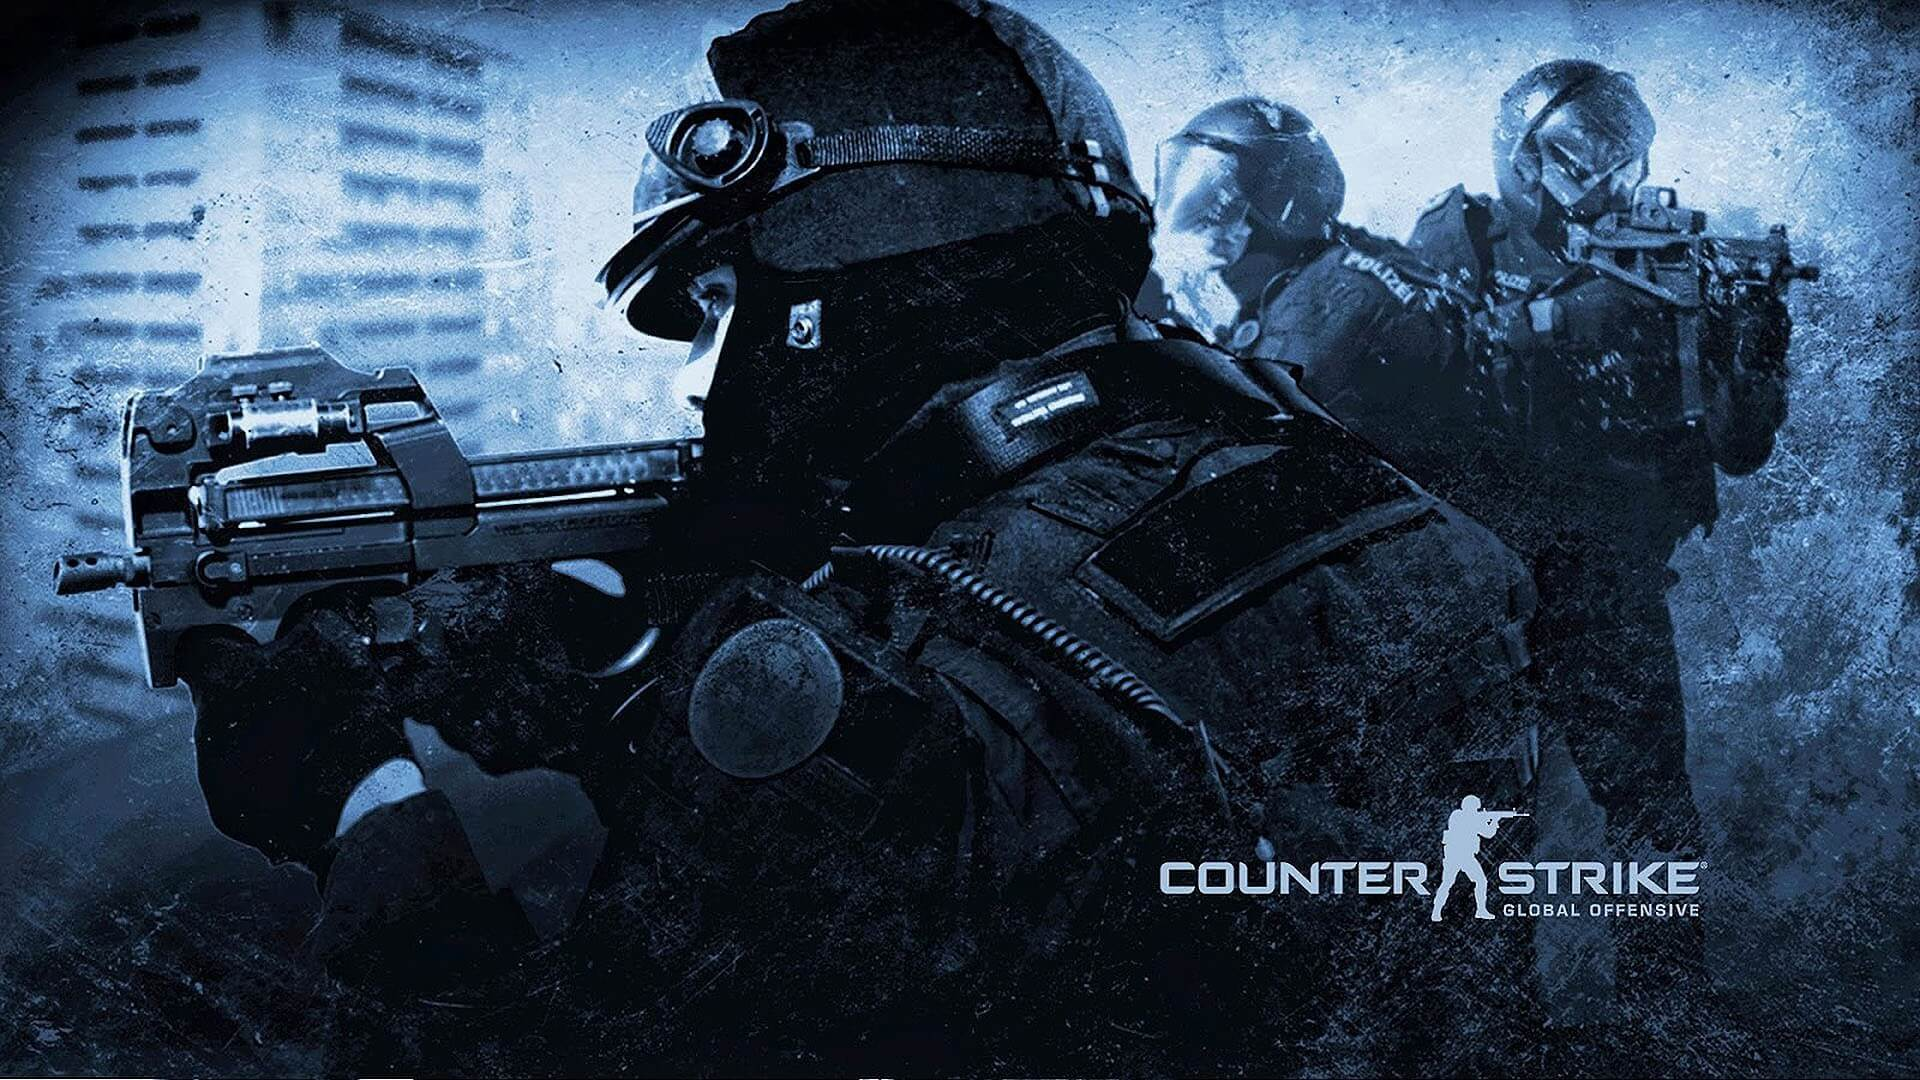 single player tries multiplayer games csgo counter-strike: global offensive counter strike global offensive Valve Software Steam